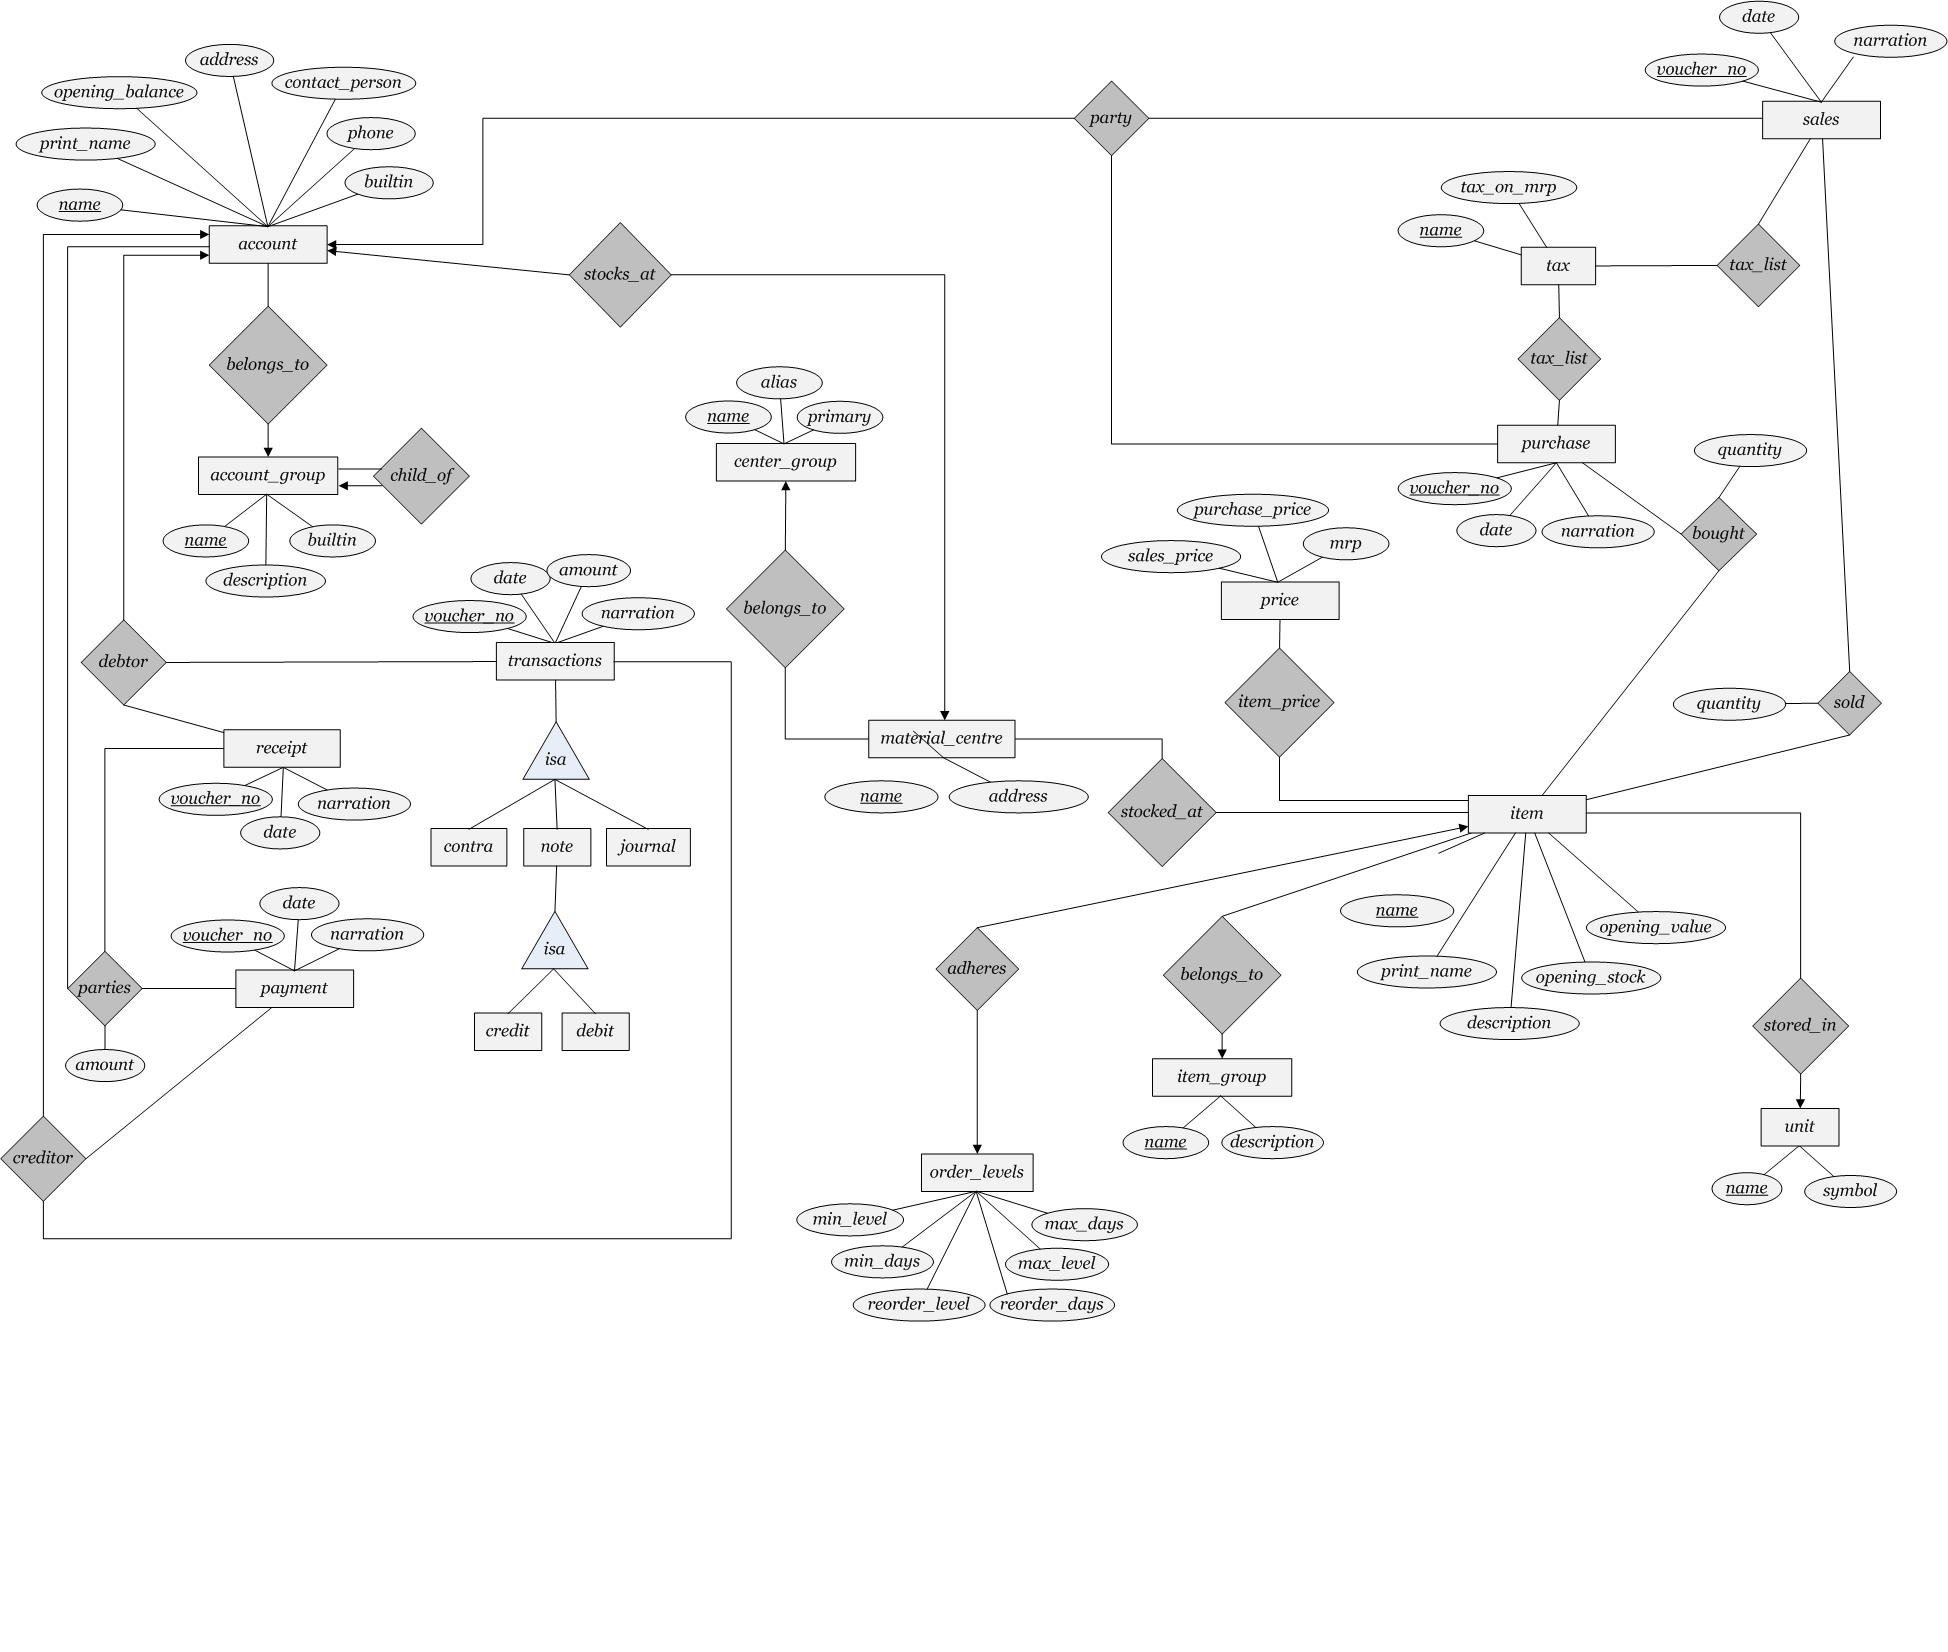 In Er Diagram ,is It Possible That Primary Key Is Not throughout Entity Relationship Diagram Key